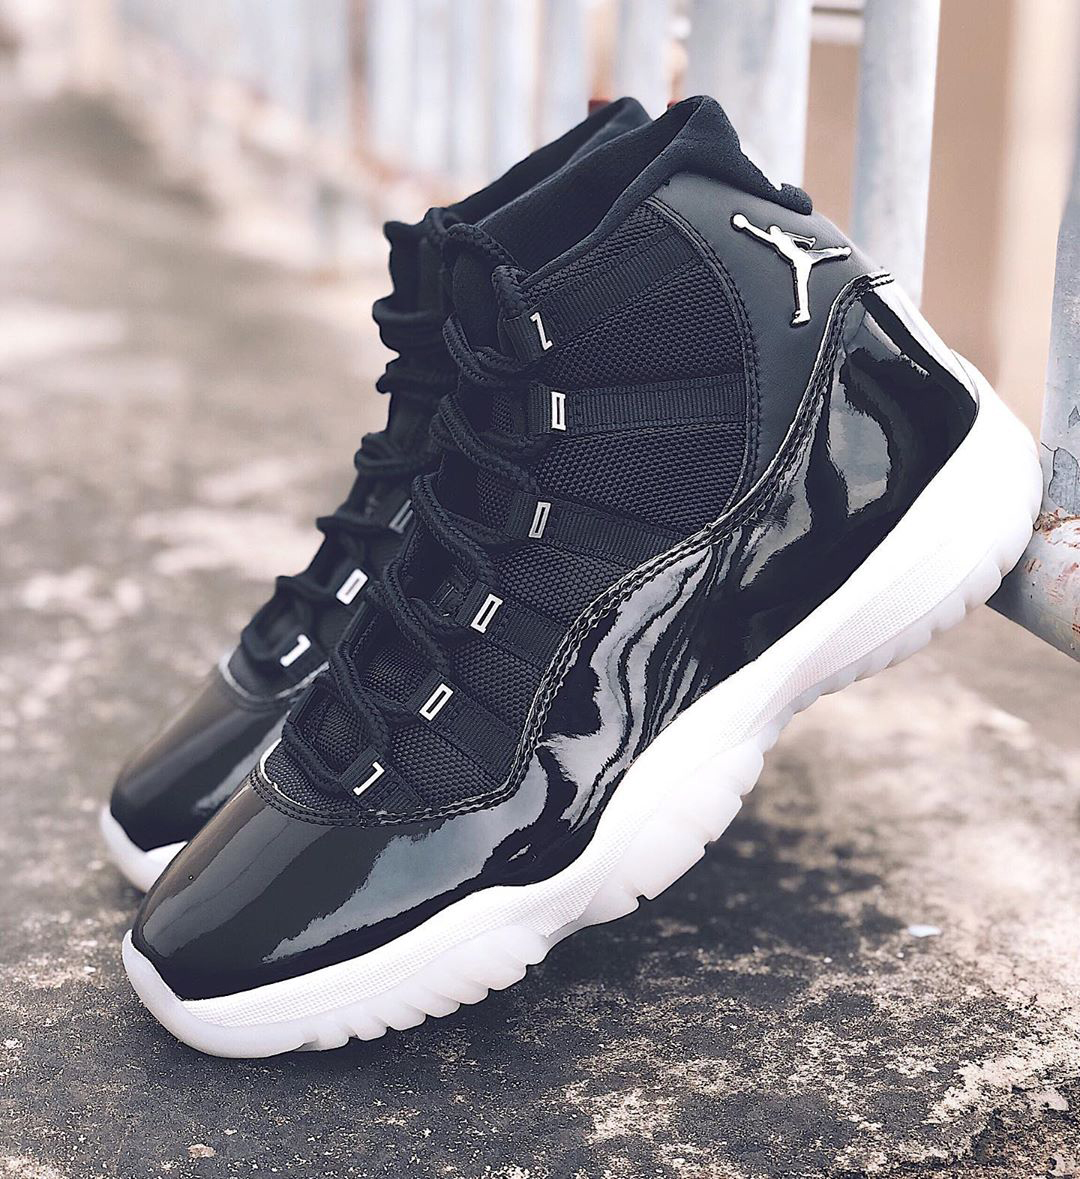 air jordan brand 11 25th anniversary black white metallic silver clear ct8012 011 official release raffle date info photos price store list buying guide